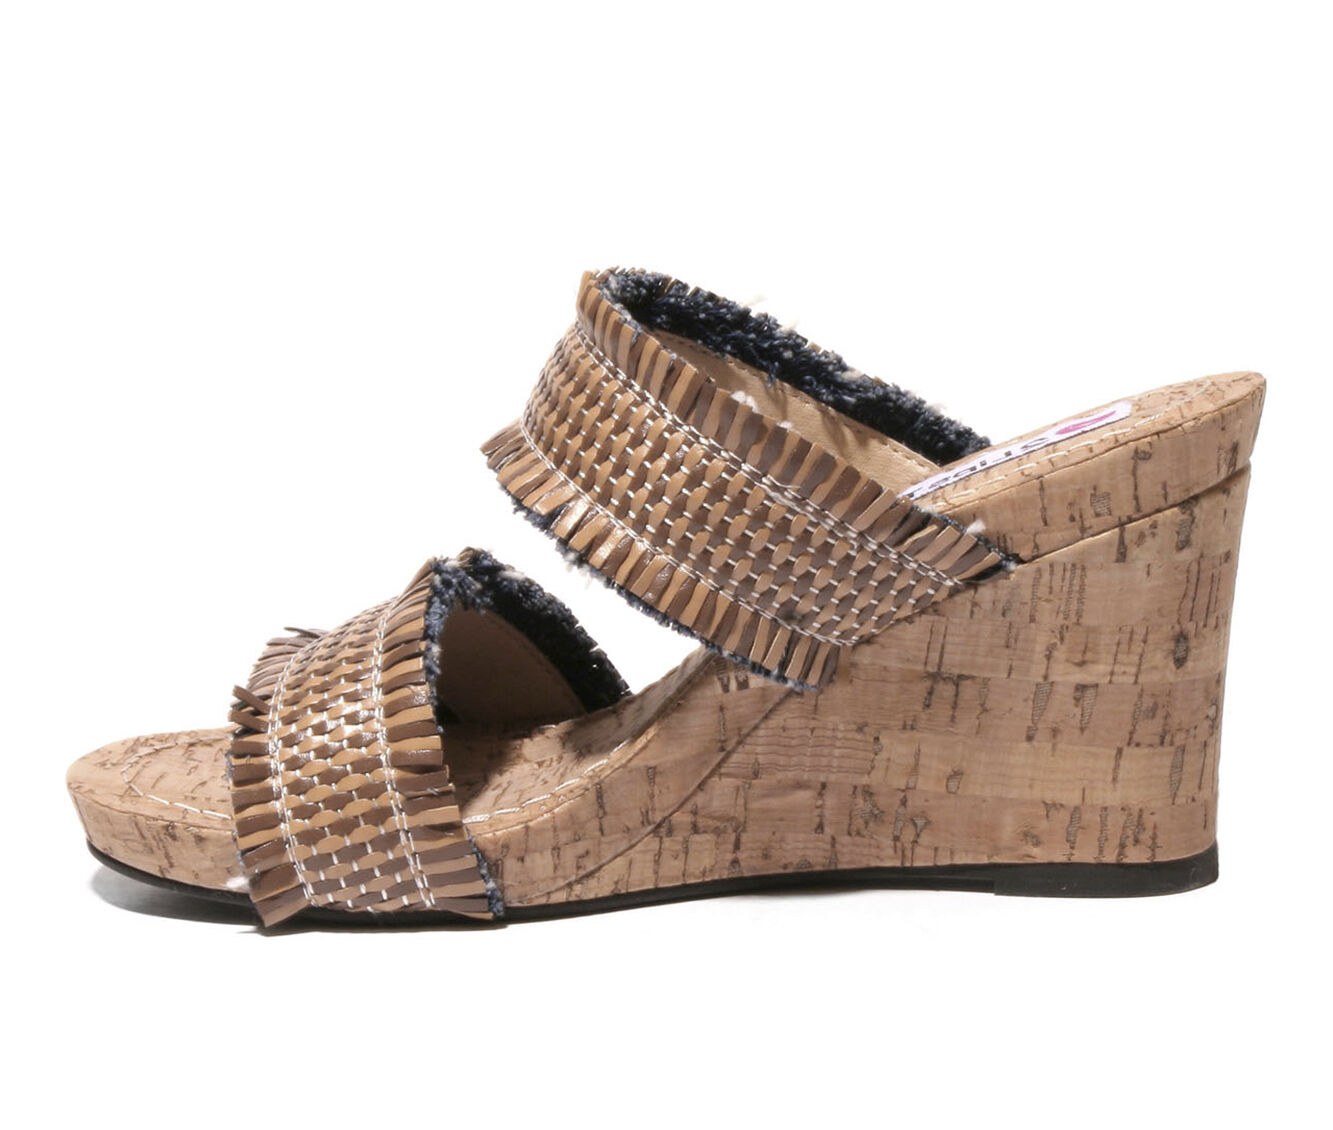 Women's 2 LIPS TOO Too Mone Wedges | Women's shoes | 2020 New W6Psa